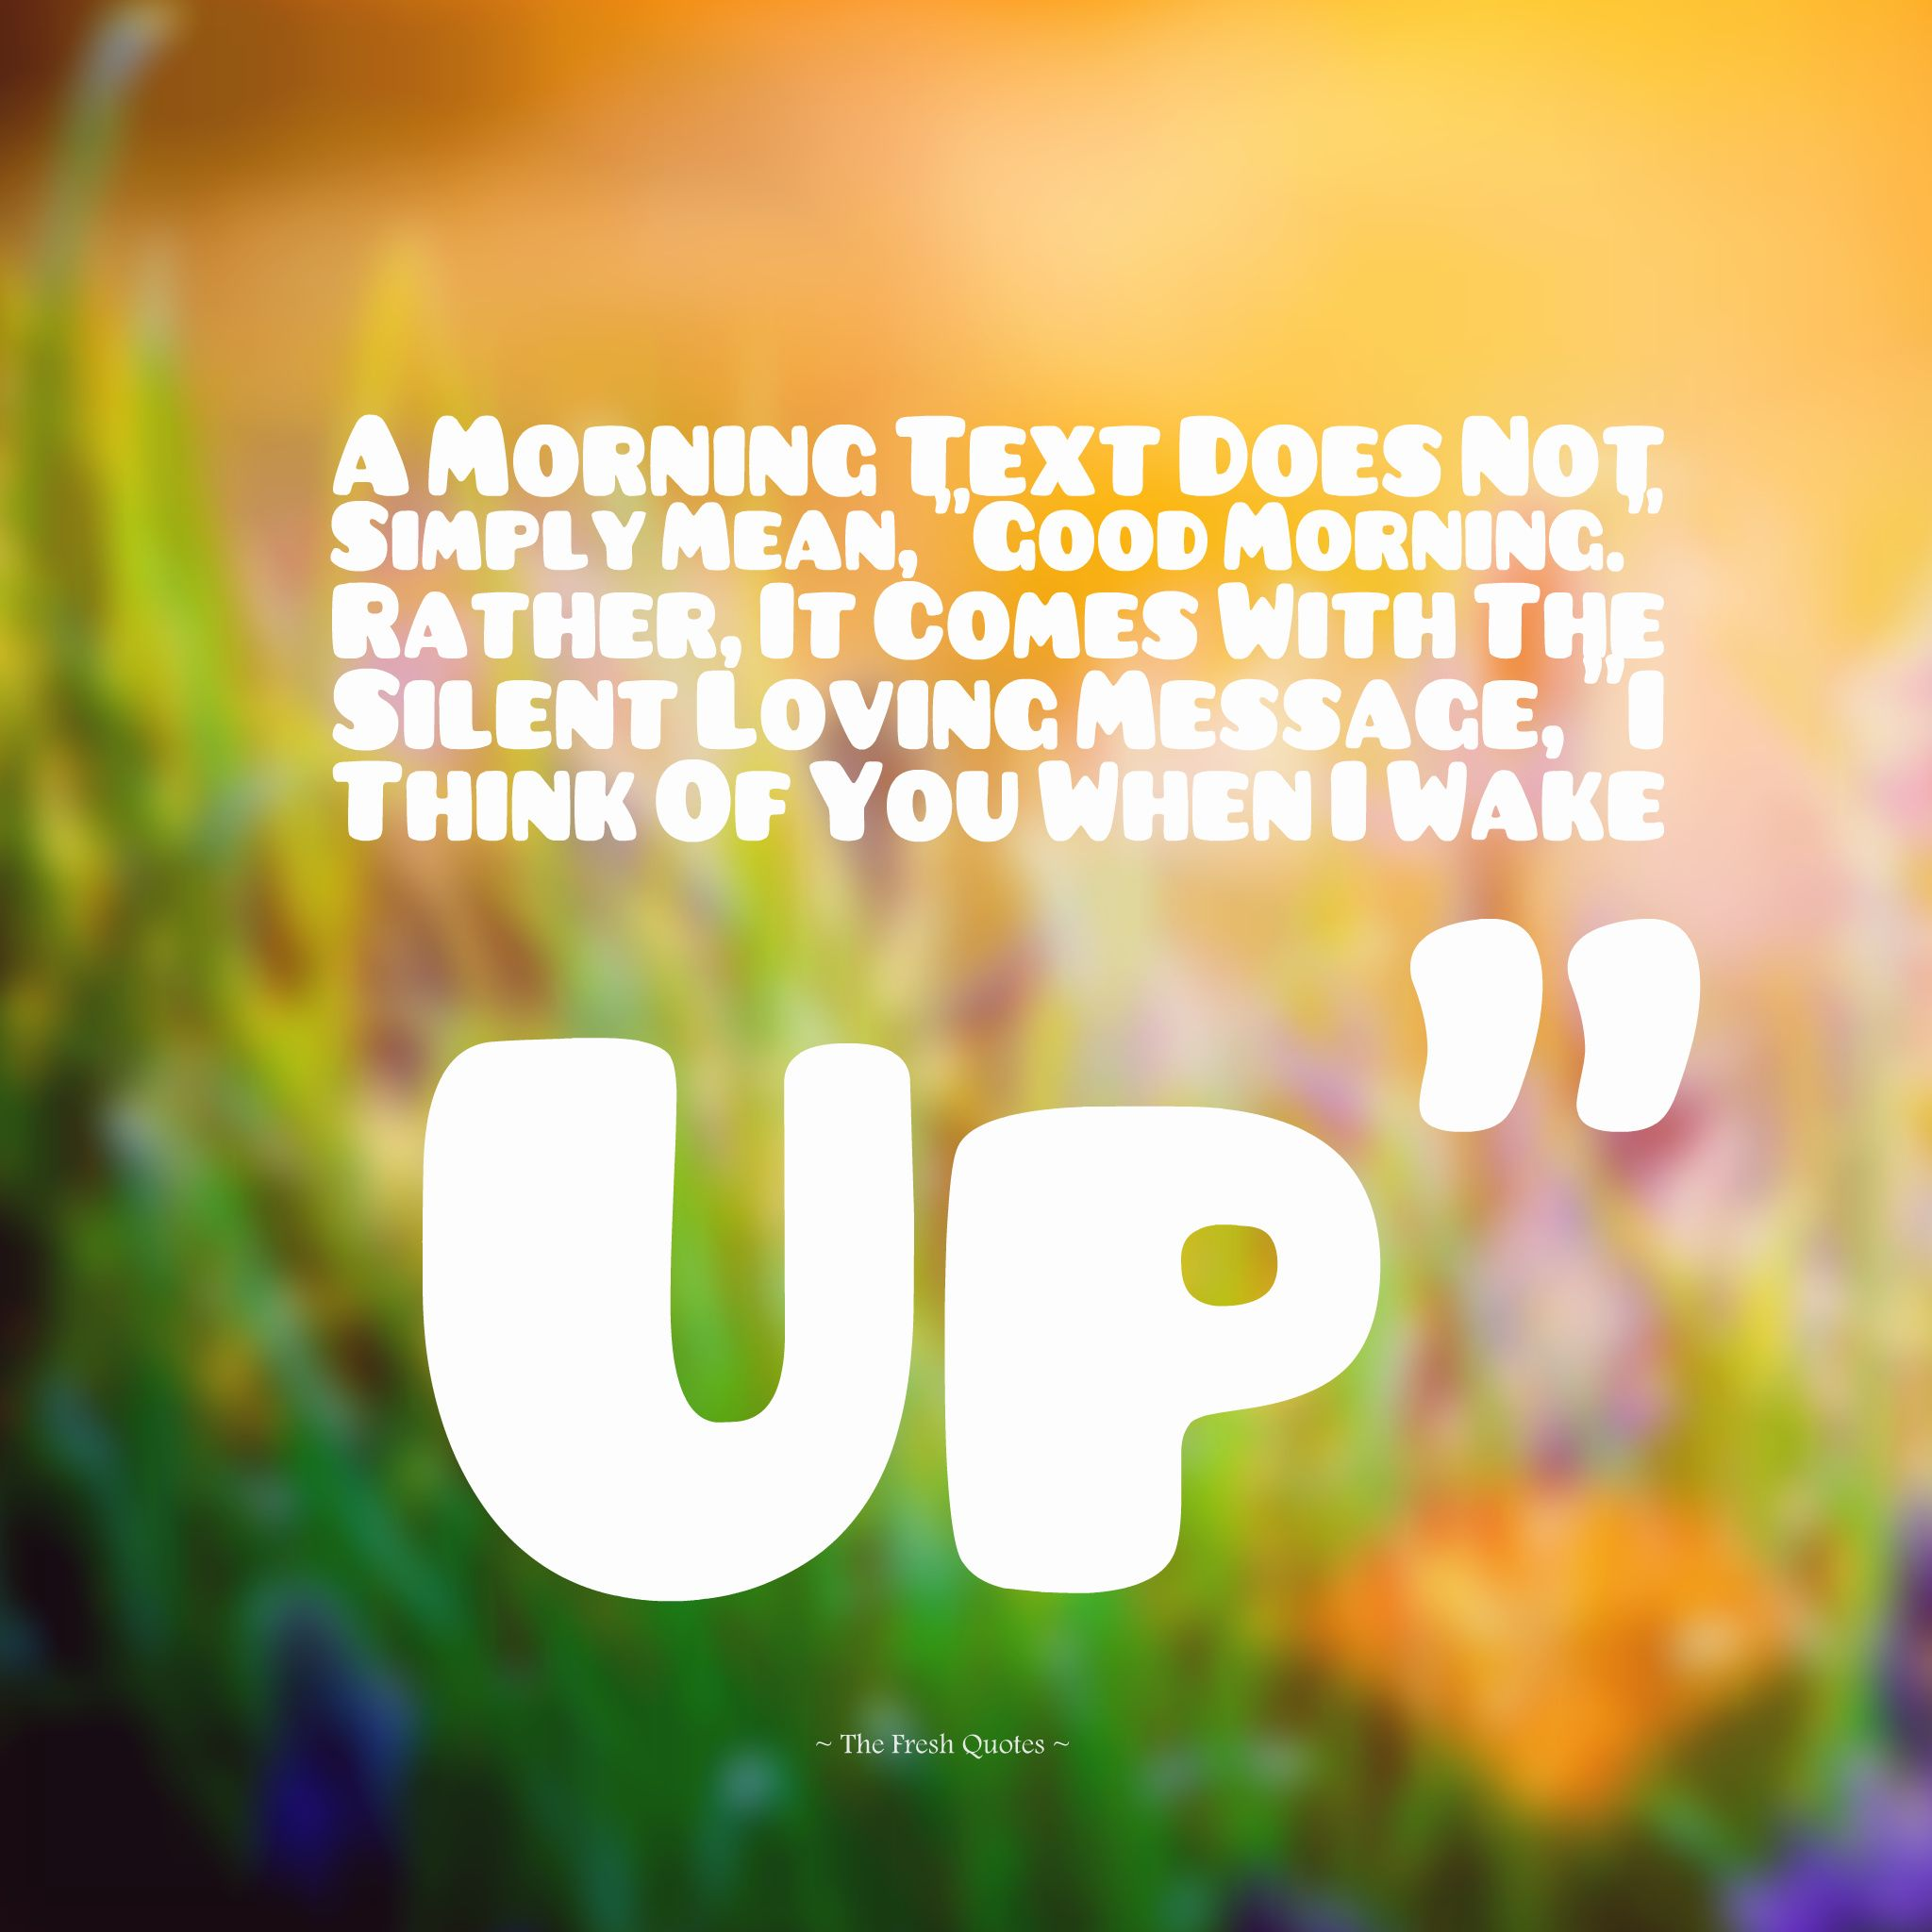 Good Morning Cutie Text : A morning text does not simply mean good rather